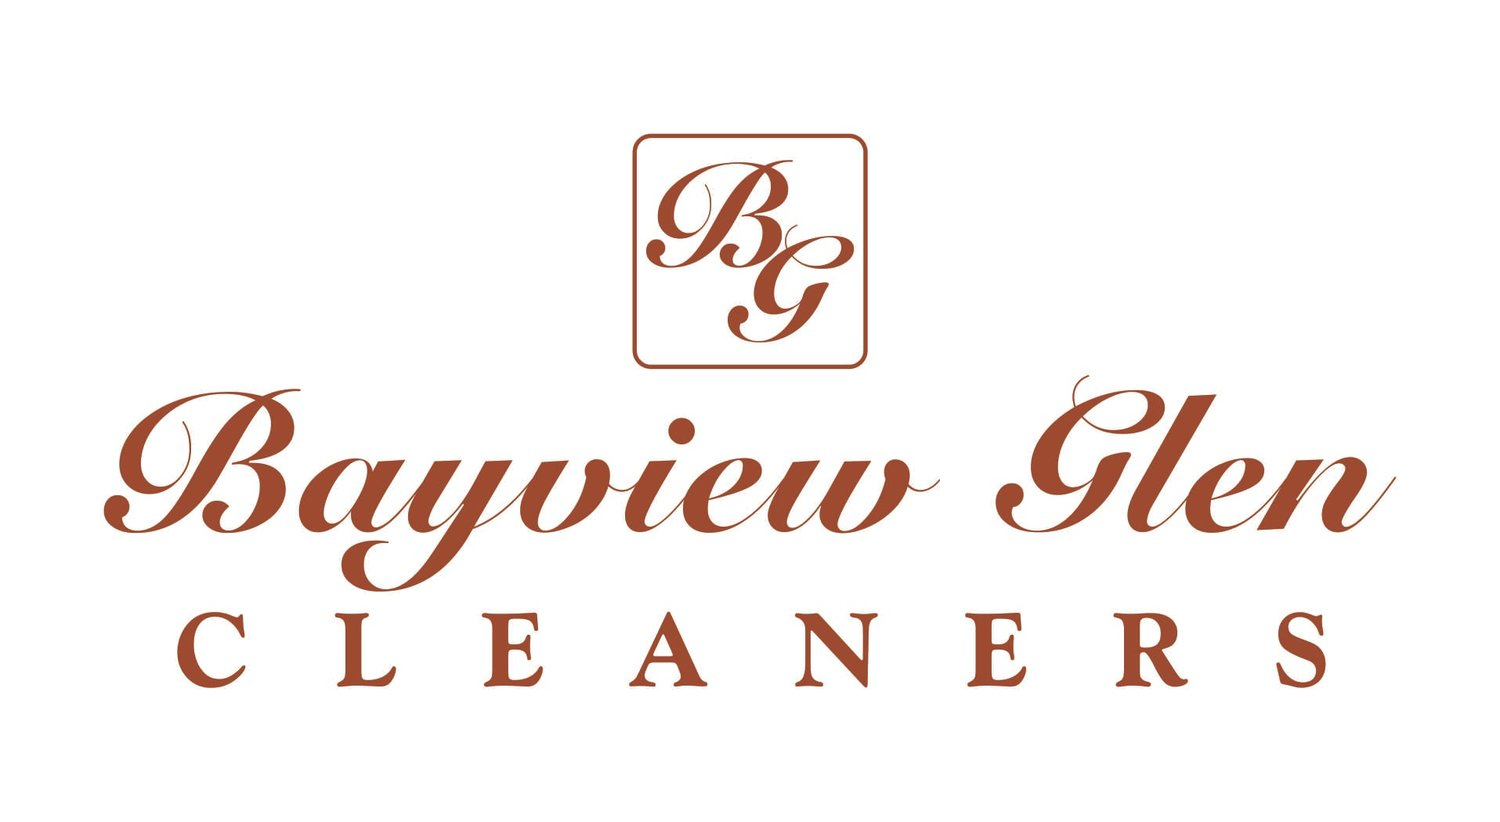 Bayview Glen Cleaners (Richmond Hill) - Dry Cleaning, Alterations, Laundry, Linens, Curtains, Drapes, Bridal